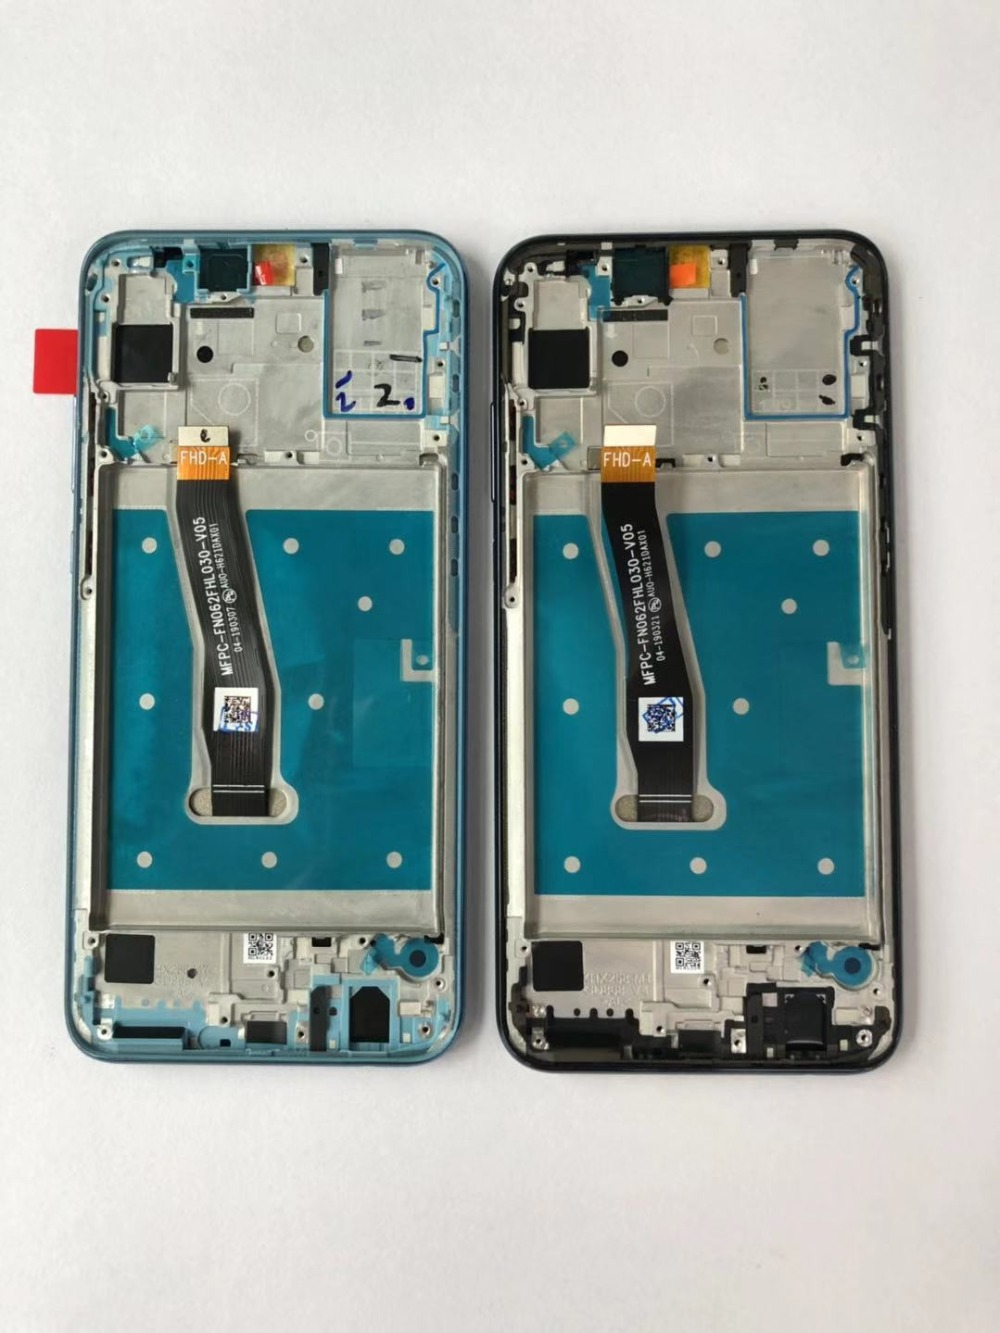 """Hce38809bfbda4b4cab385955e5a85f9dL 100%Original Display For Huawei Honor 10 Lite LCD Touch Screen Digitizer with Frame Global Version 6.21"""" HRY-LX1 HRY-LX2 HRY-L21"""